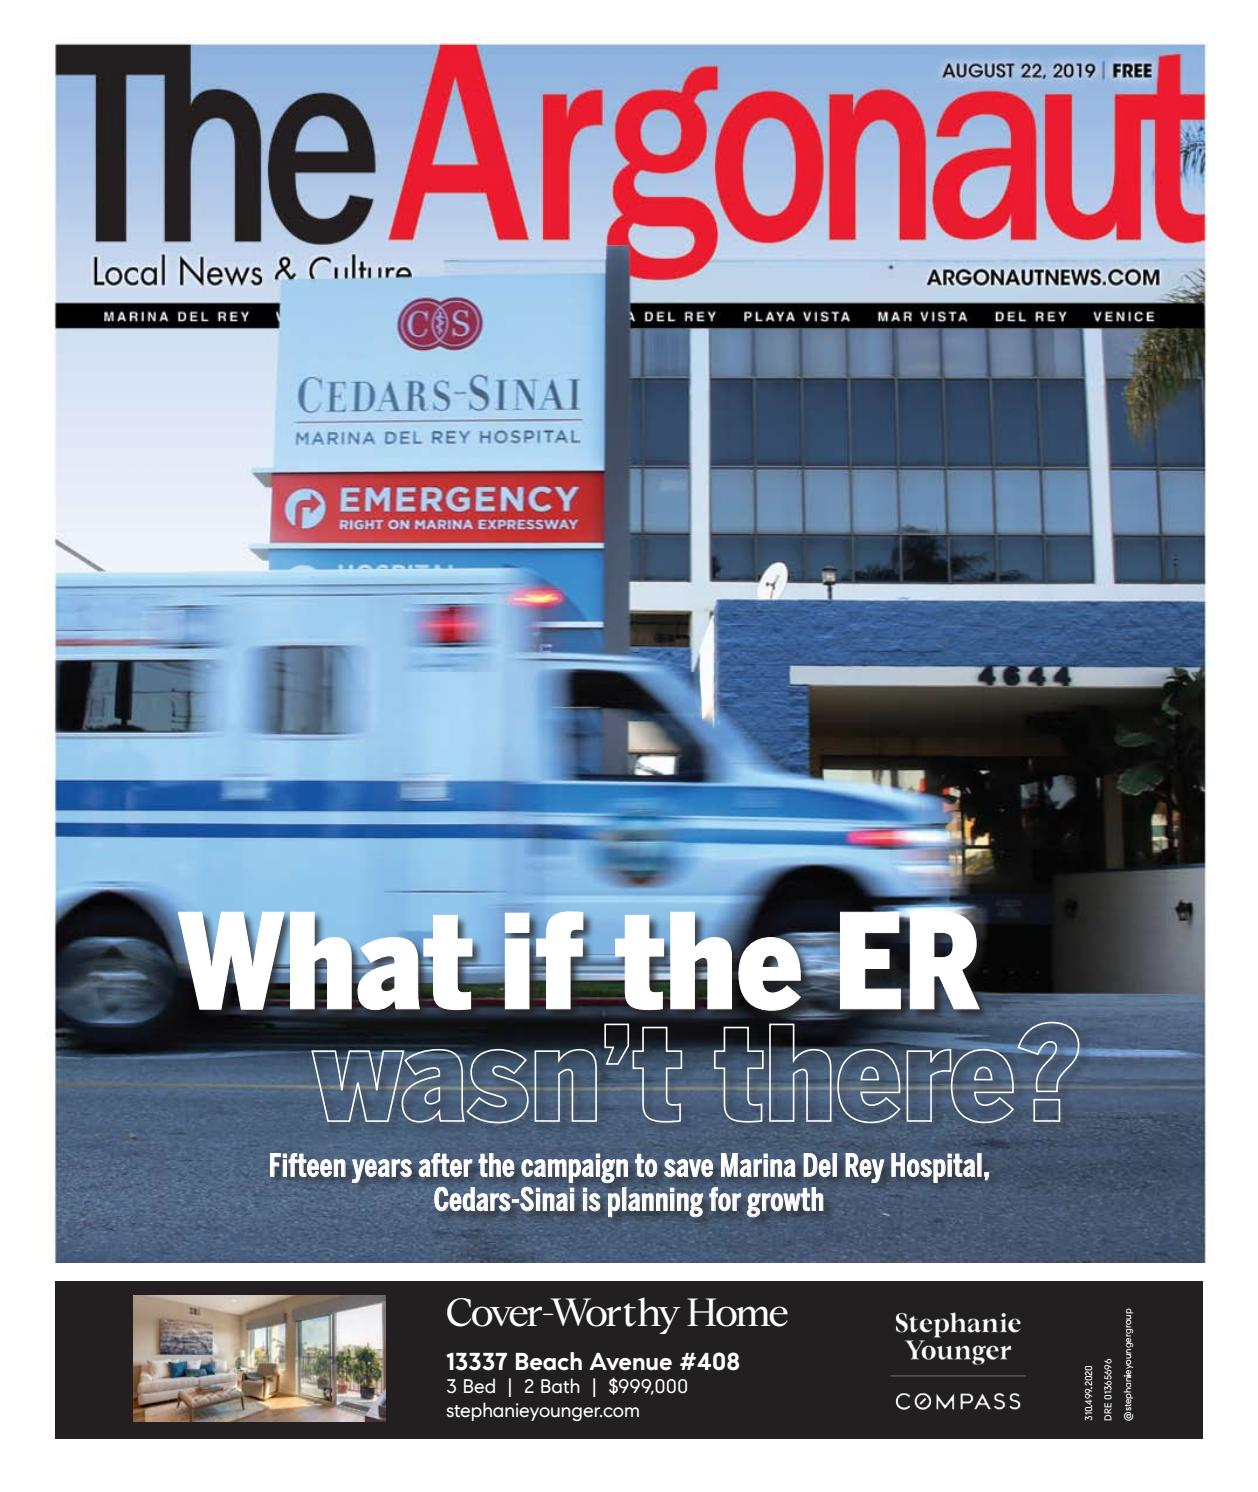 The Argonaut Newspaper, August 22, 2019 by Times Media Group